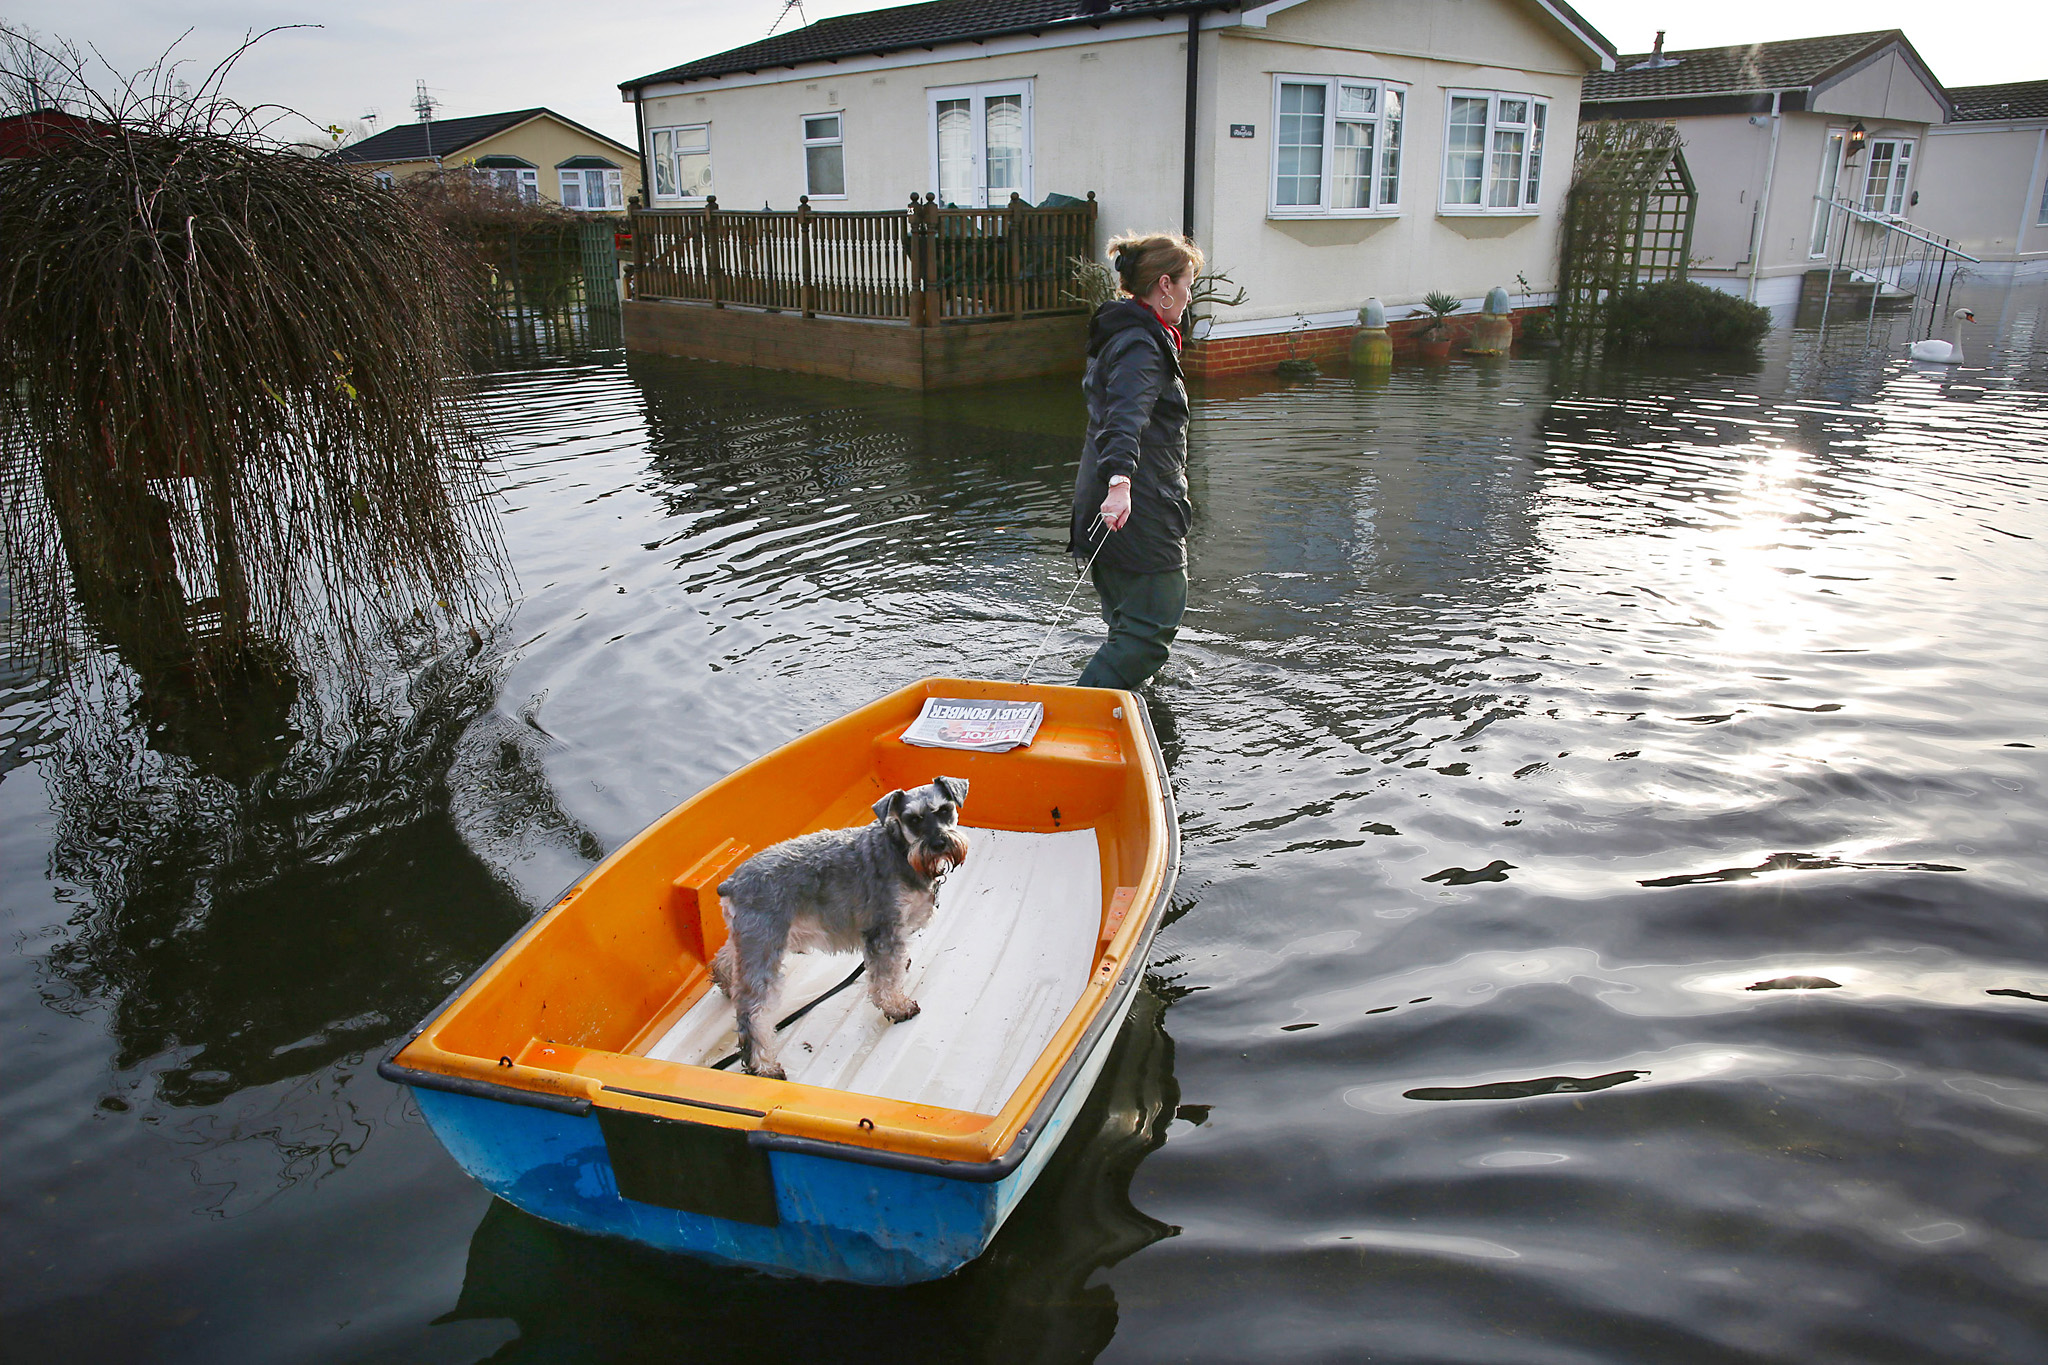 ***BESTPIX*** Severe Flood Warnings In Place For The UK...CHERTSEY, UNITED KINGDOM - JANUARY 08:  Christine Baker wades through flood water, pulling her dog Archie in a boat, at the Abbey Fields caravan park after the River Thames flooded on January 8, 2014 in Chersey, England. Parts of the United Kingdon are entering a third week of flooding and stormy conditions.